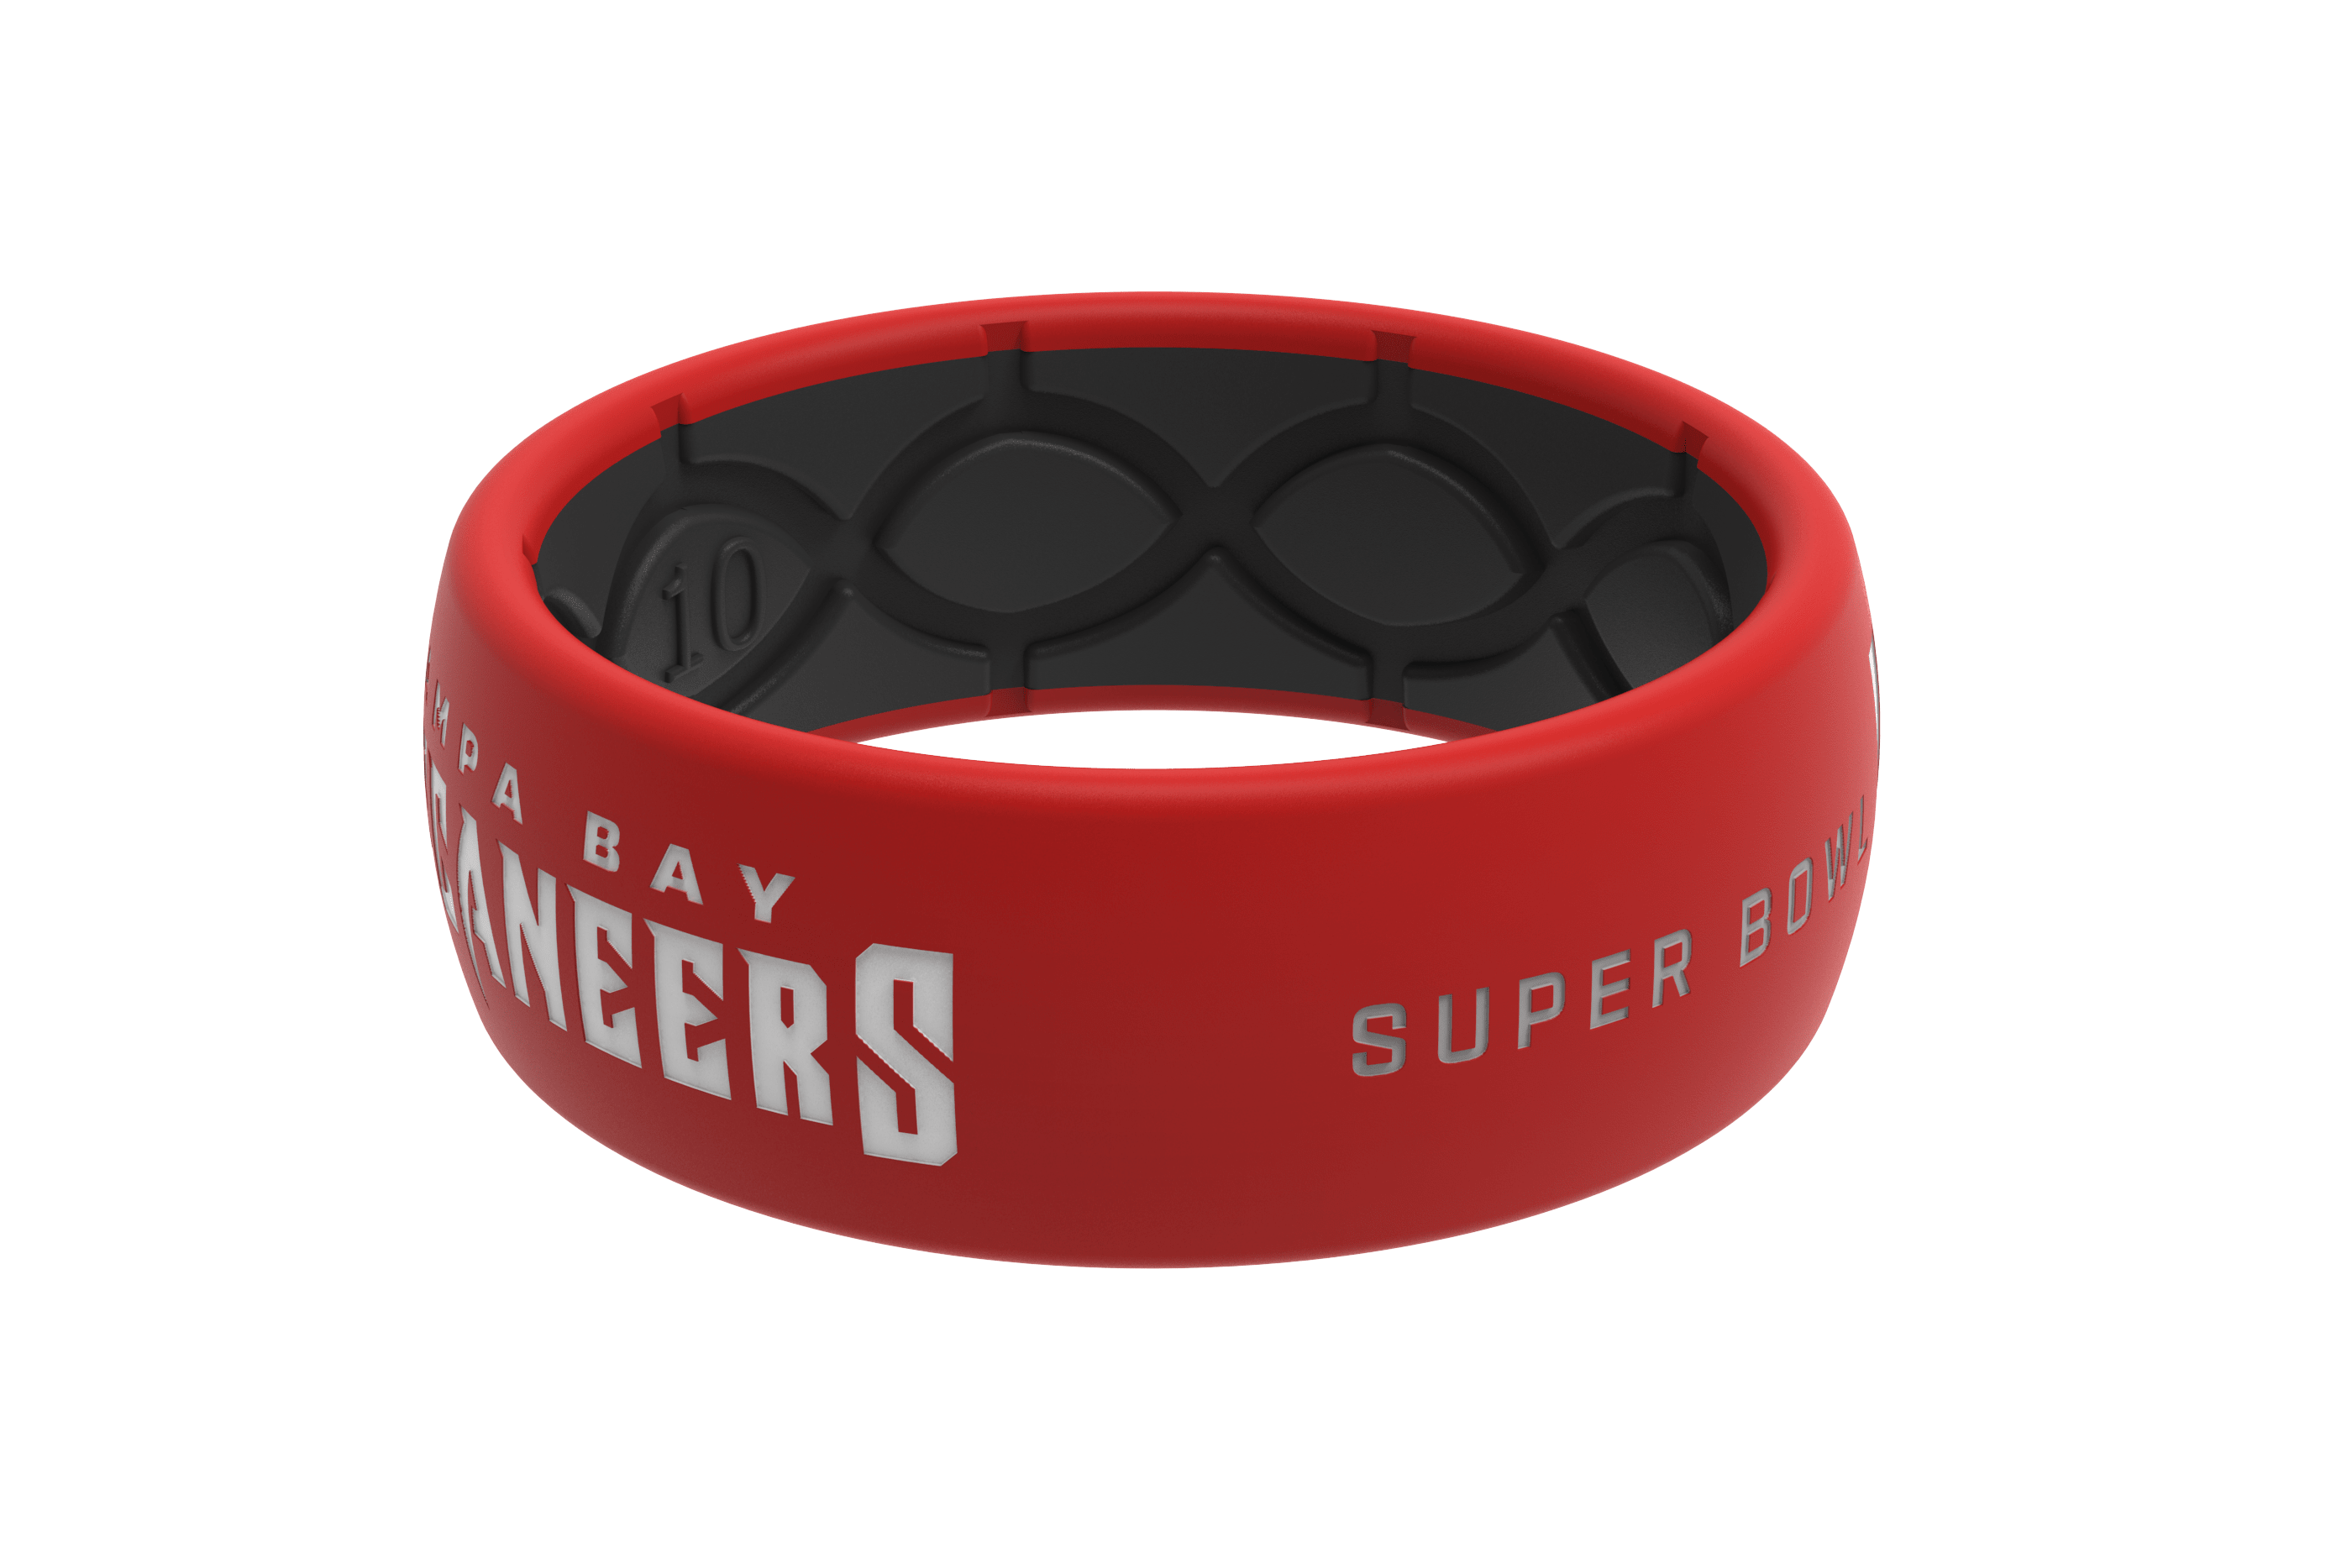 Limited Edition NFL Tampa Bay Buccaneers Super Bowl LV Fan Ring | Groove Life